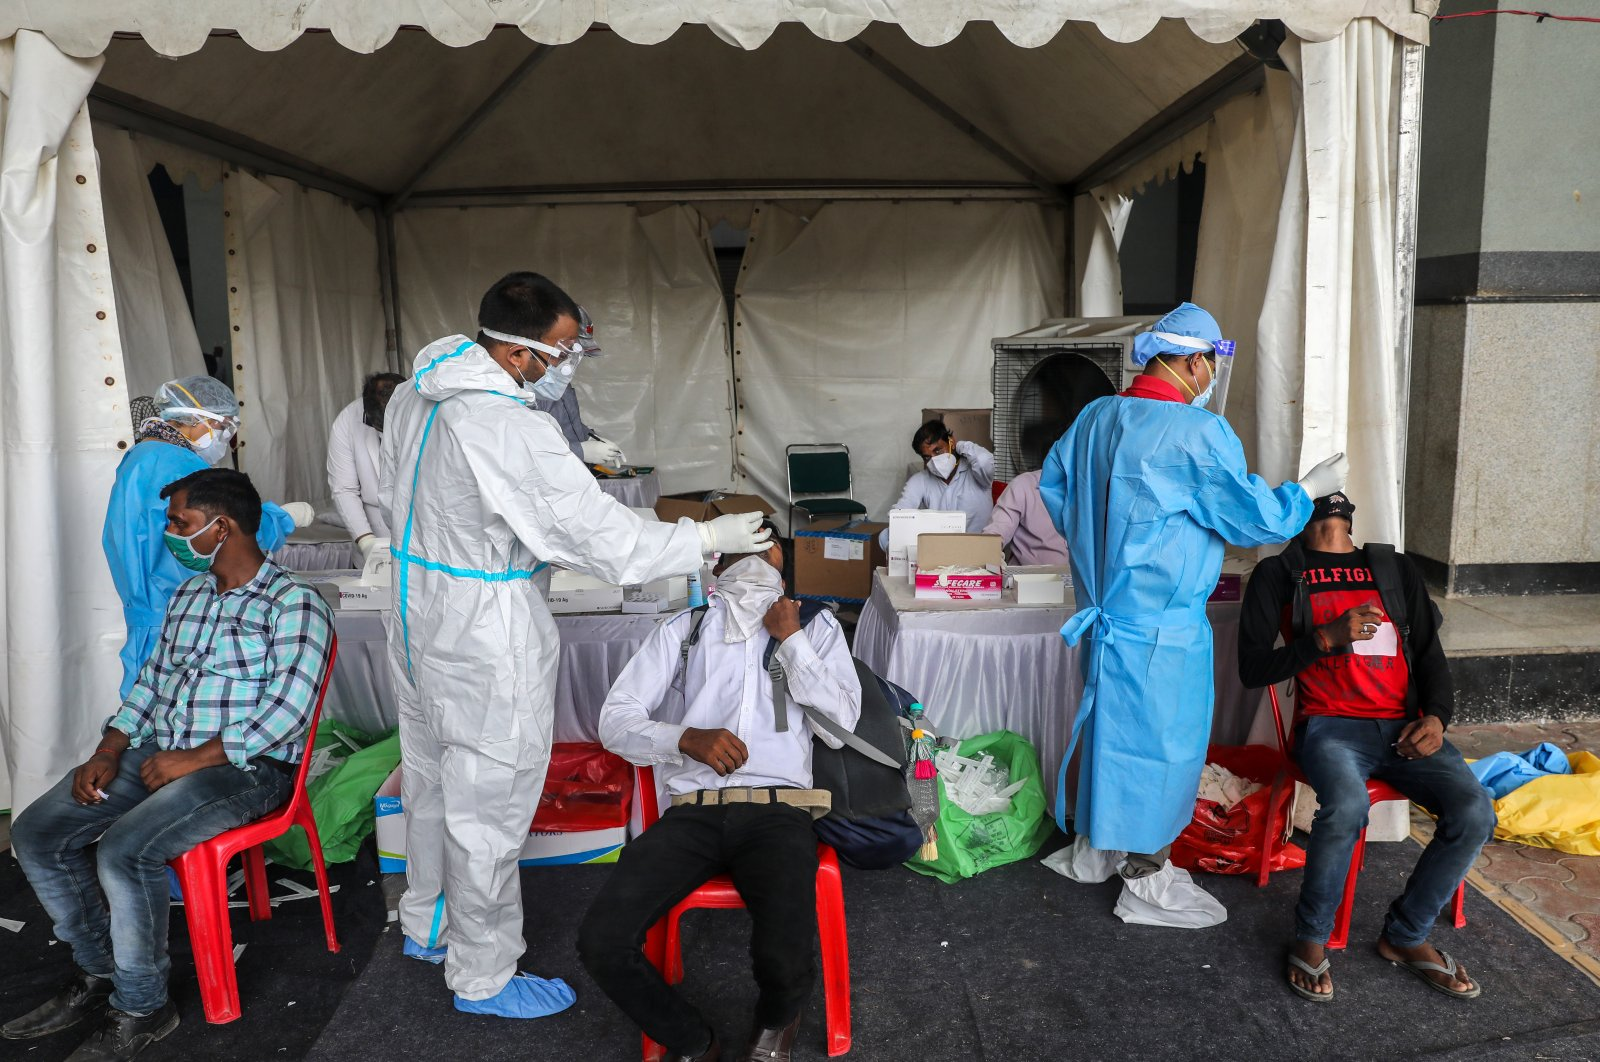 Health workers collect swab samples from migrant workers, New Delhi, India, Aug. 18, 2020. (EPA Photo)